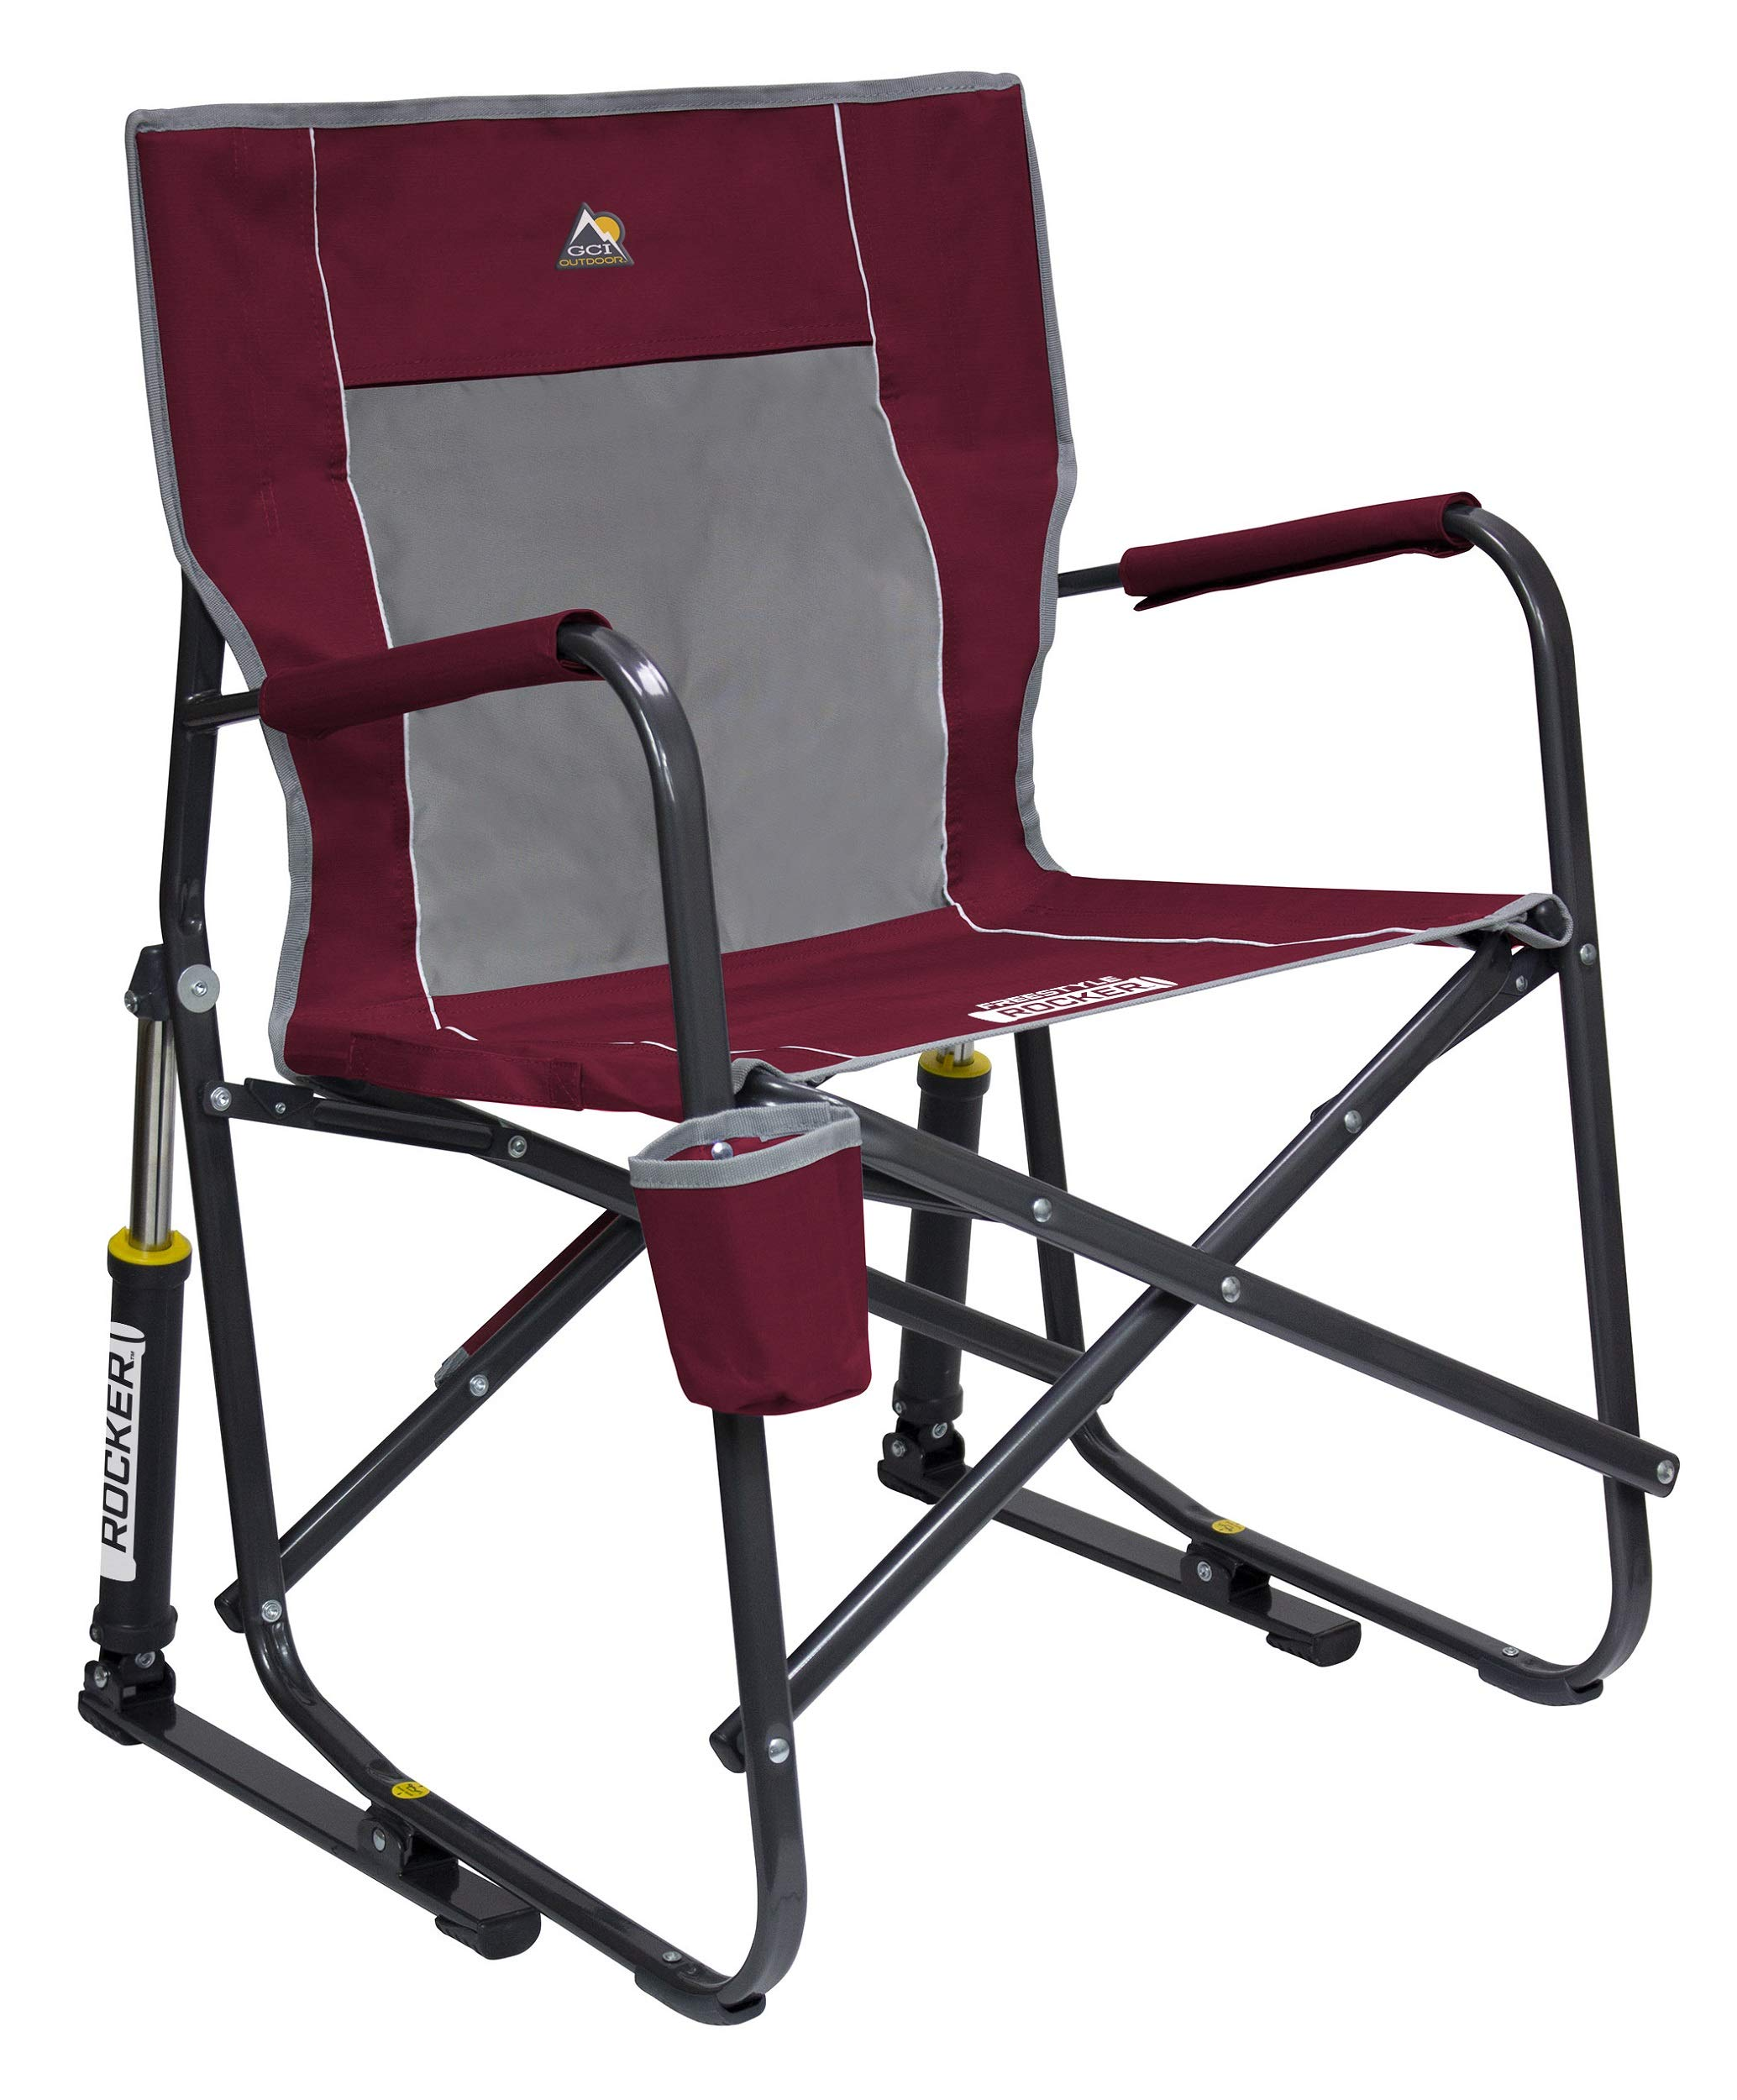 best folding lawn chairs for adults amazon com rh amazon com Portable Folding Sports Chair Portable Folding Sports Chair